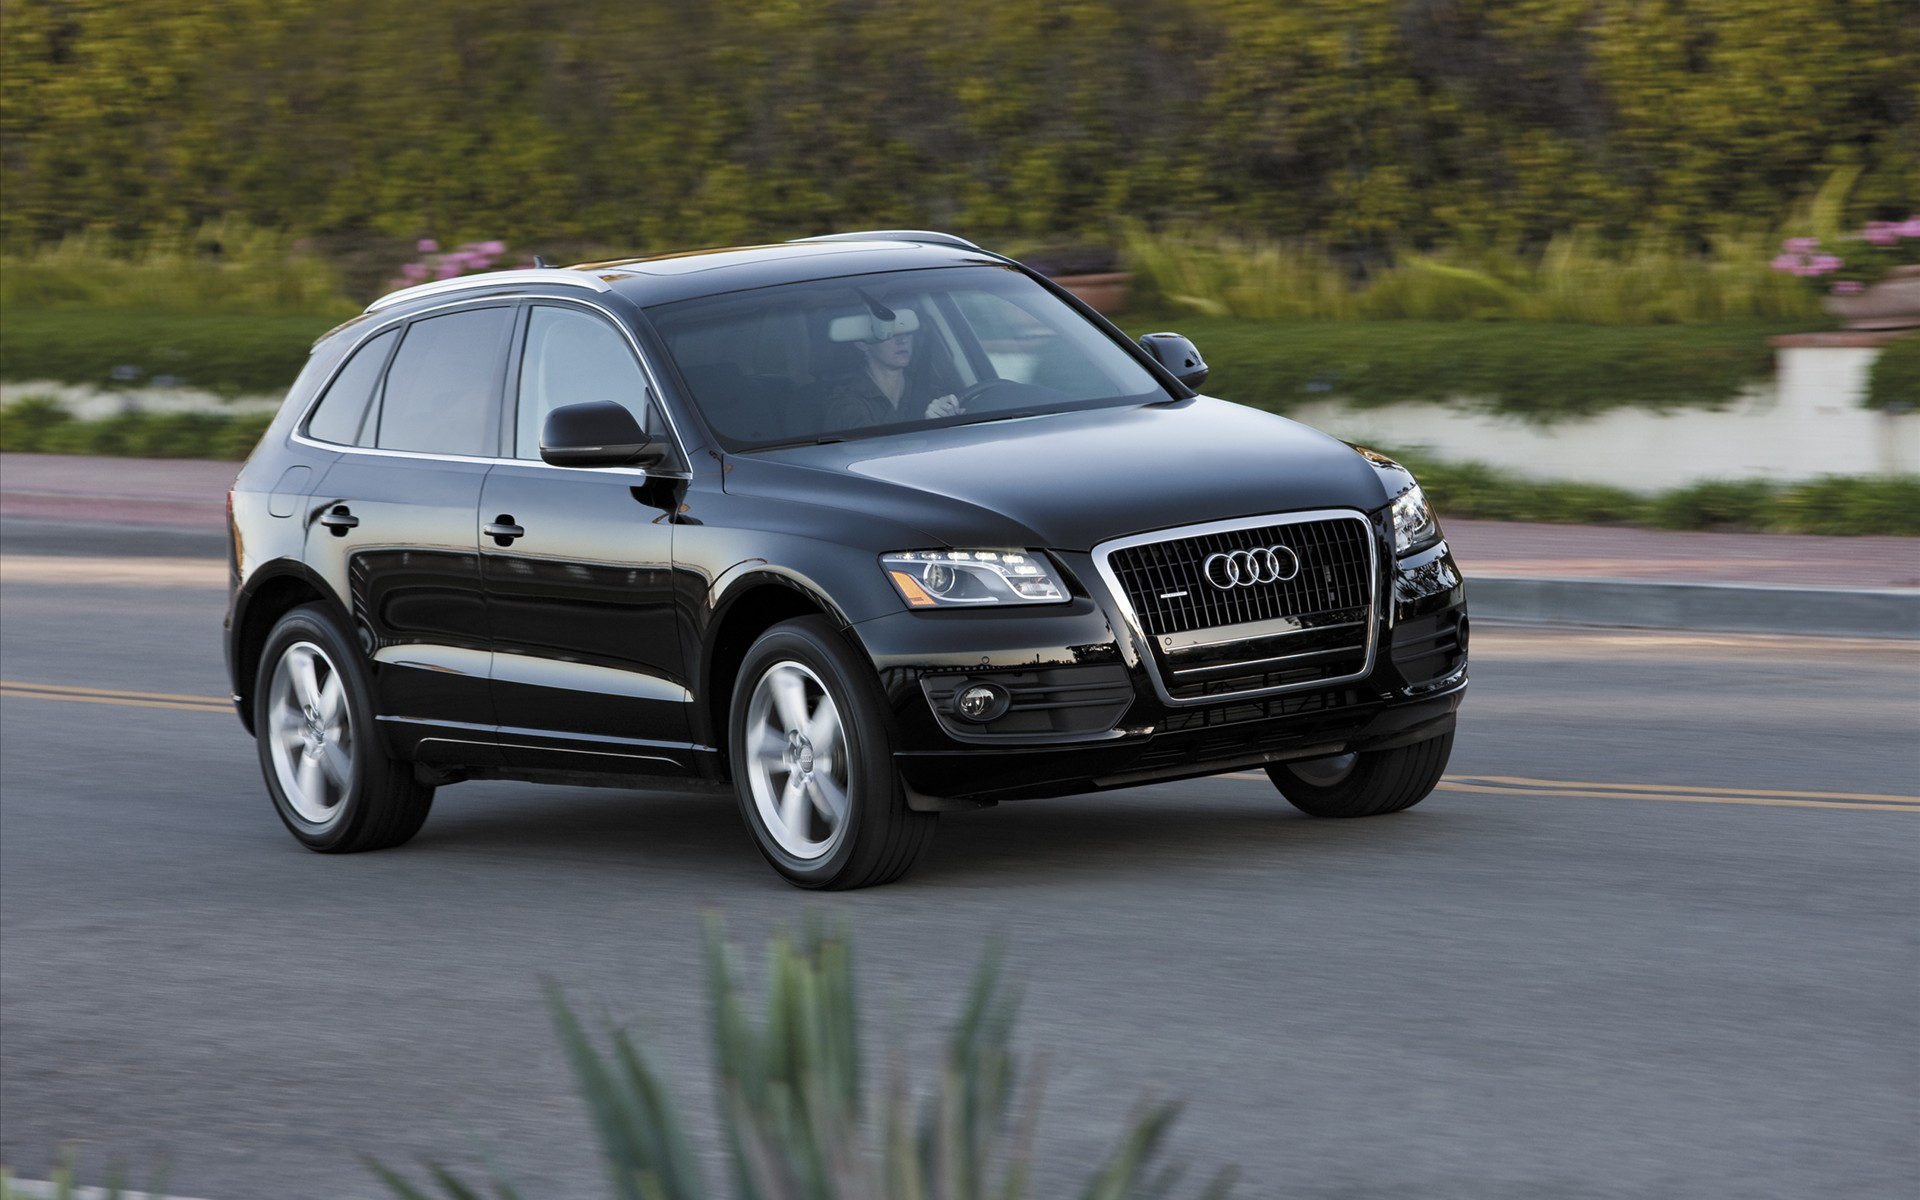 2010 audi q5 hd wallpapers automotive news. Black Bedroom Furniture Sets. Home Design Ideas